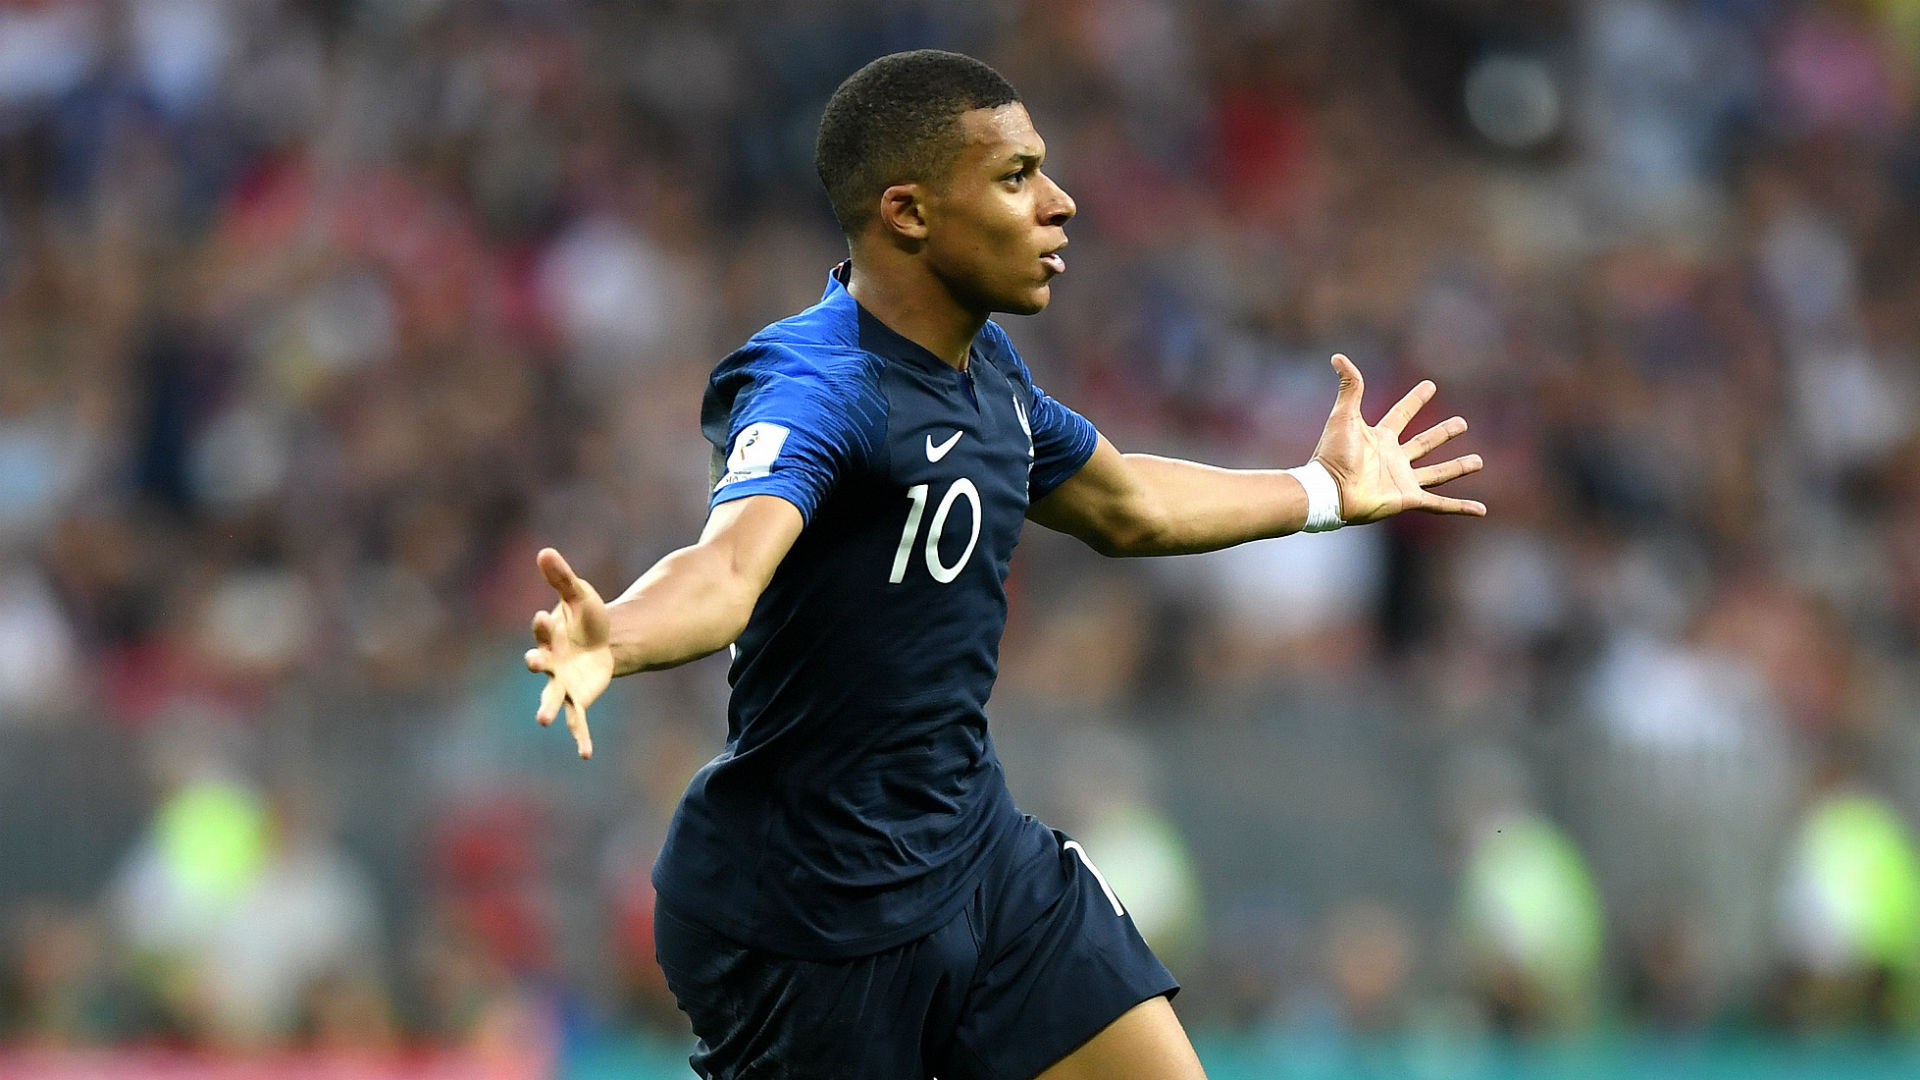 Soccer Star Kylian Mbappe Will Donate World Cup Earnings to Charity